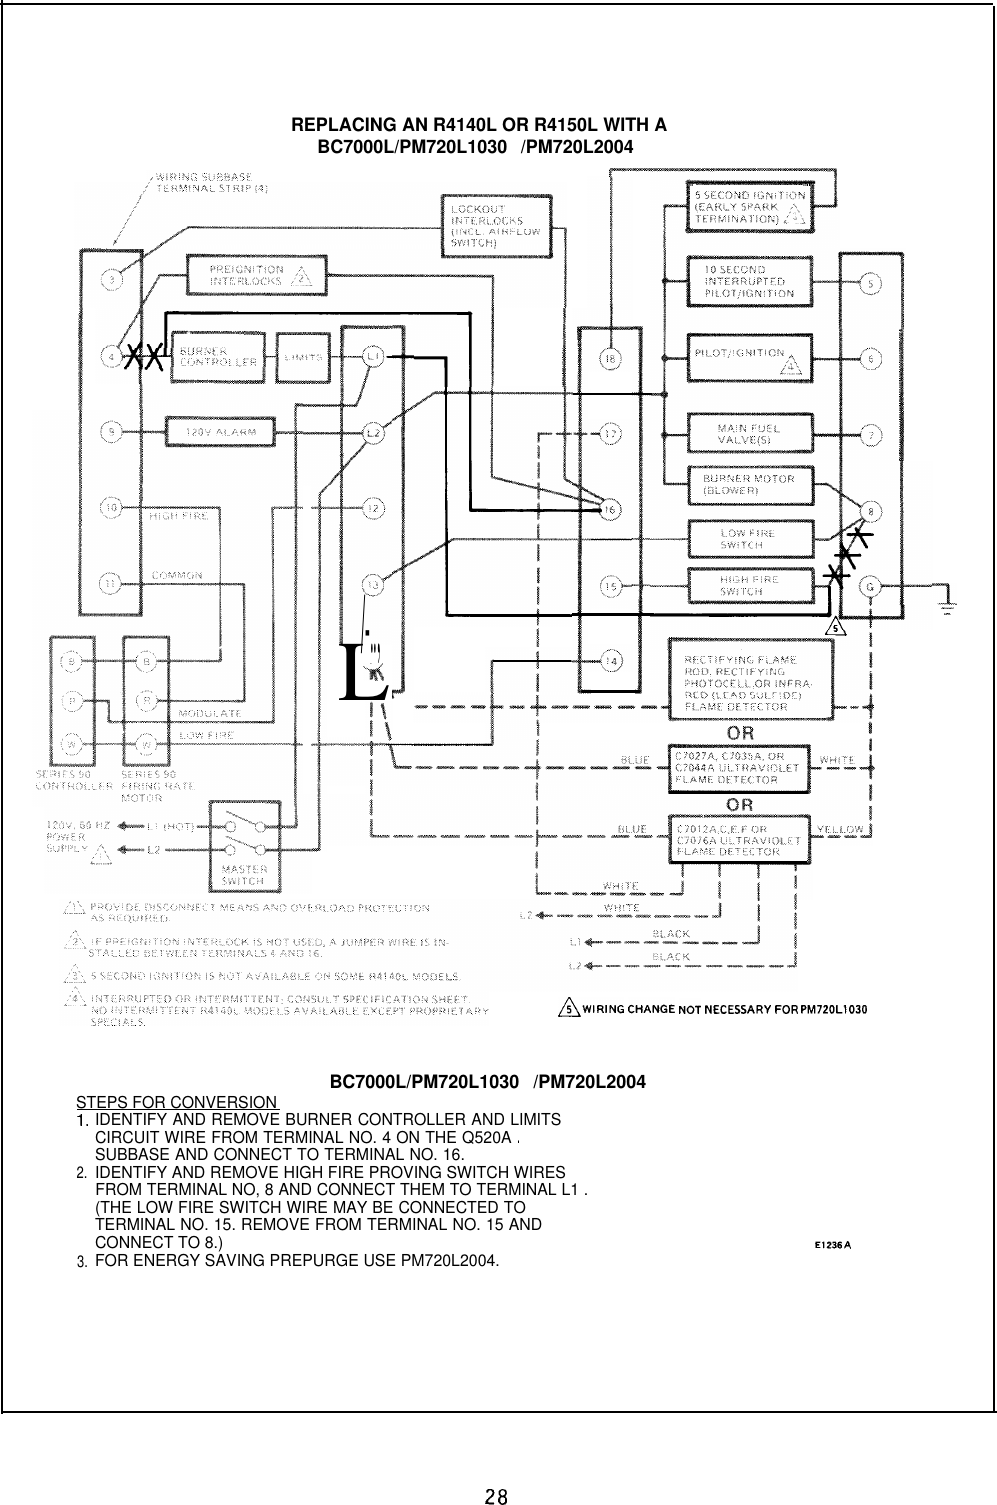 Cn4605A1001 Honeywell Wiring Diagram from usermanual.wiki